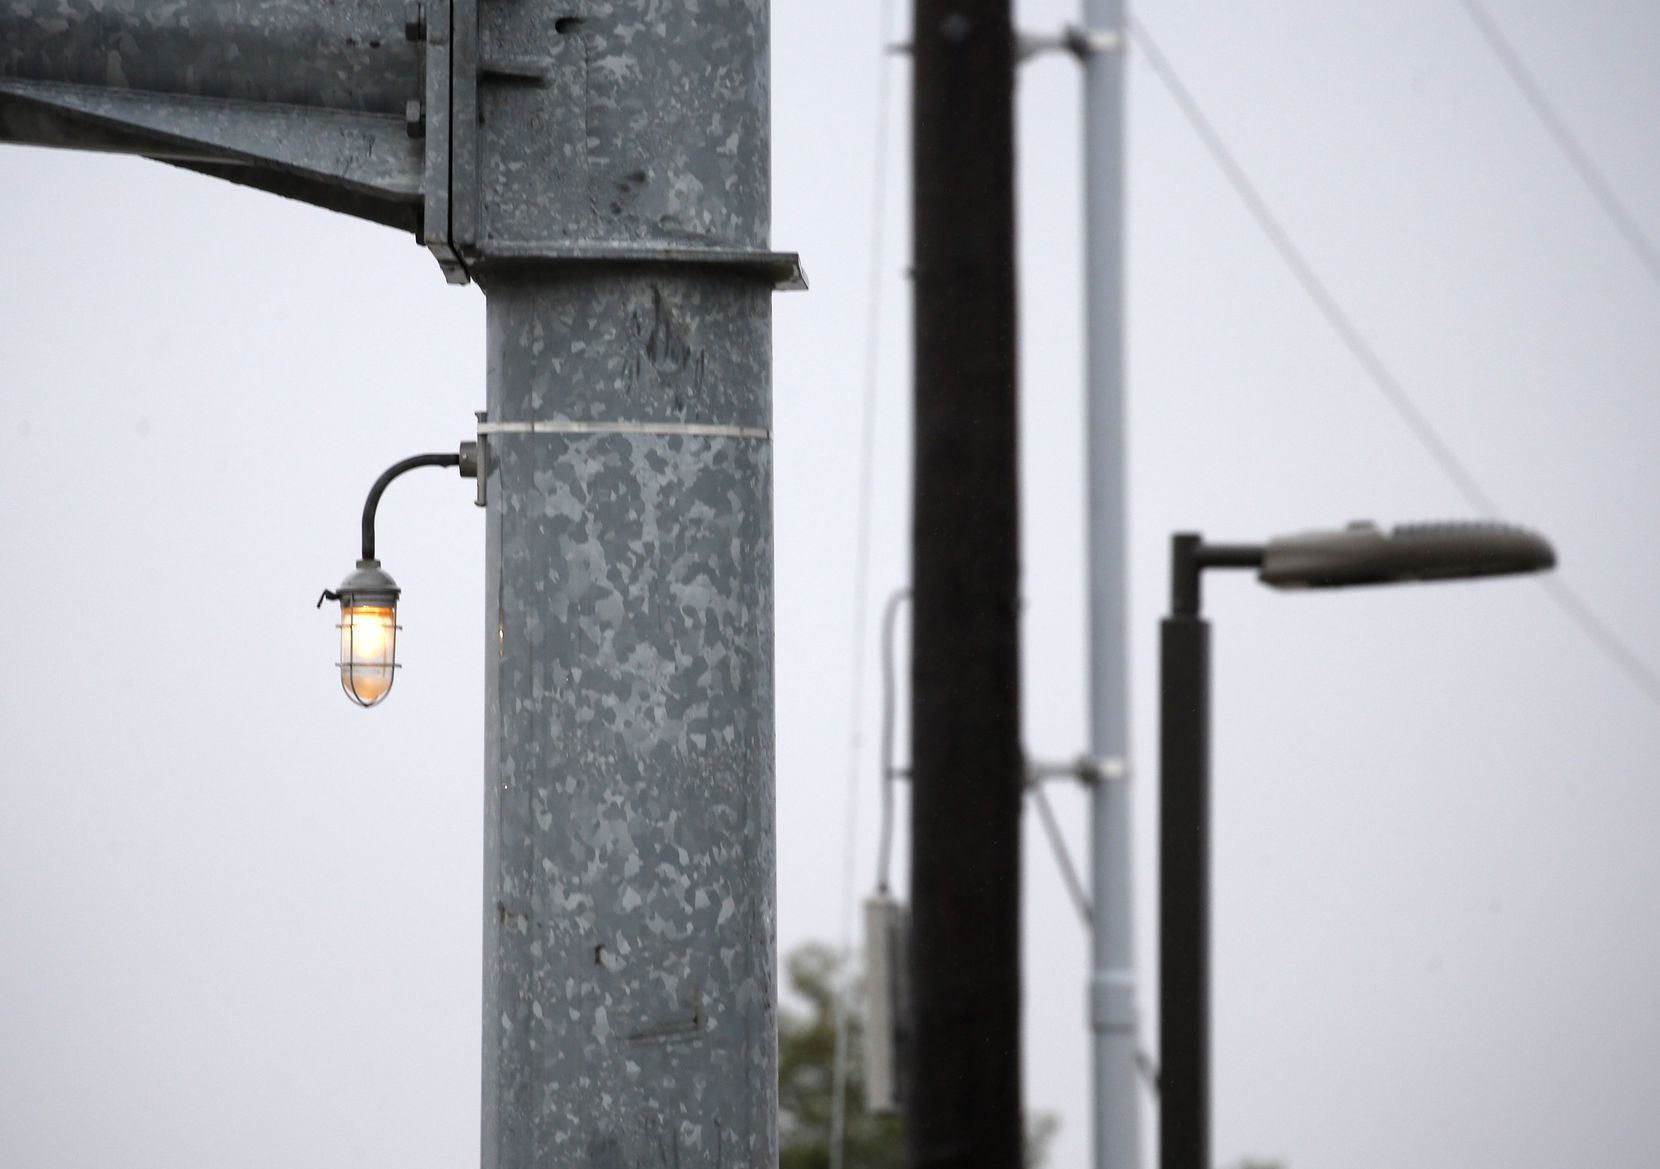 This white light affixed to a traffic stop arm at Campbell and Coit roads is one of many the city of Richardson has around town to help with red light enforcement.